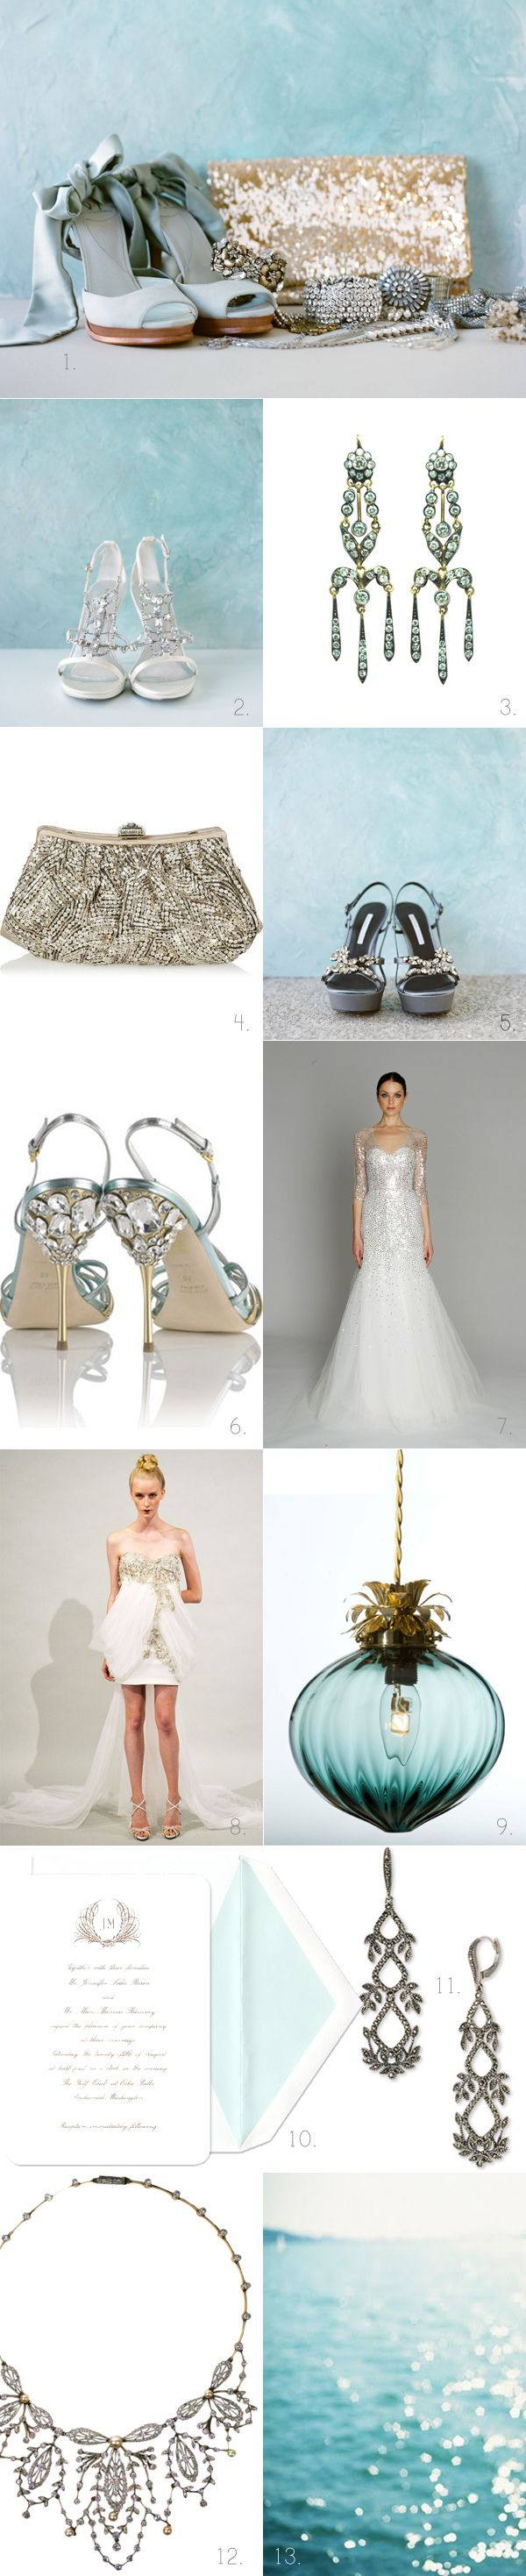 The sparkly wedding dress is out of hand gorgeous!!!